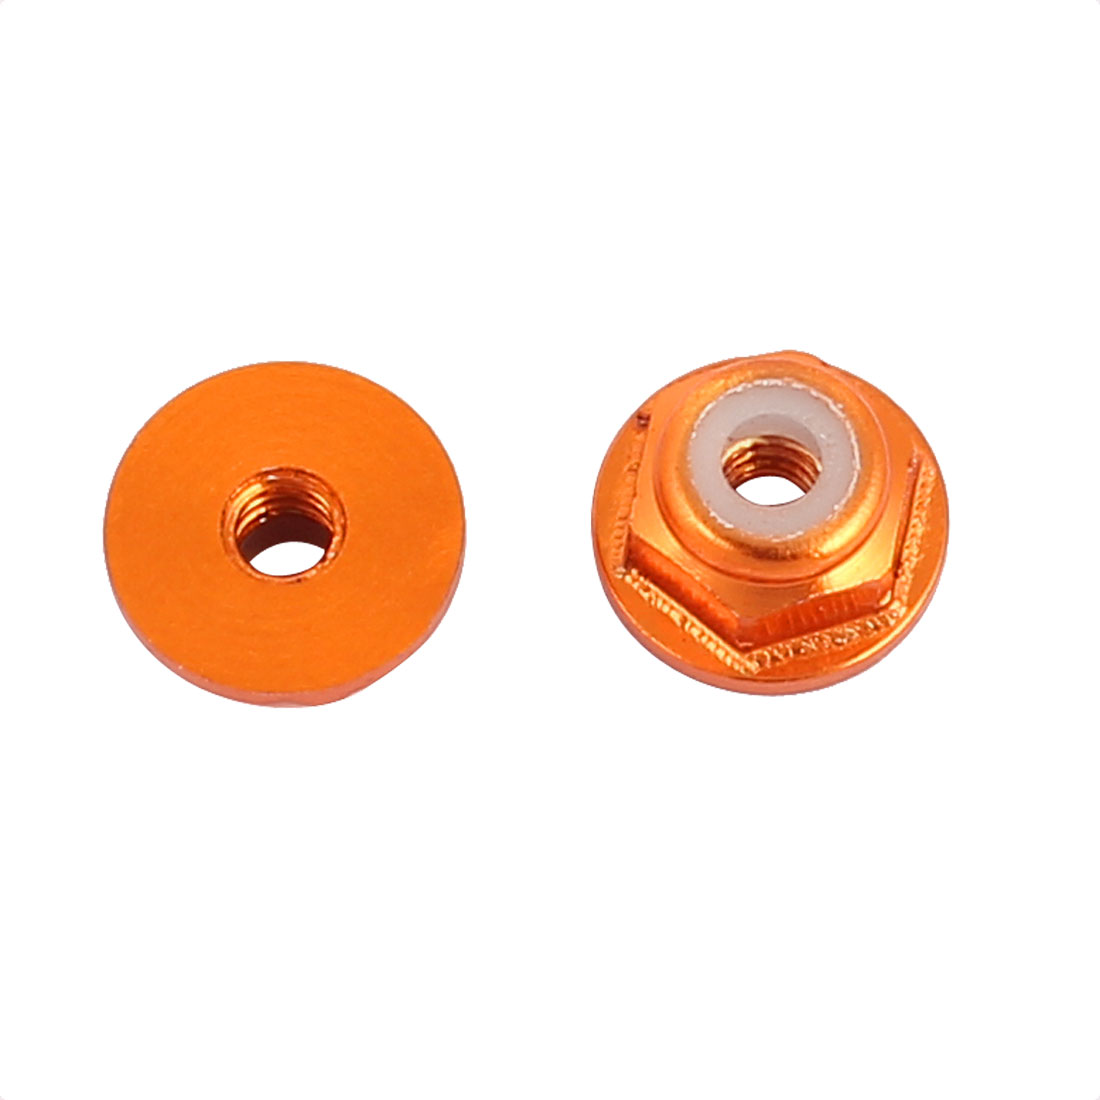 M2 Aluminum Alloy Orange Flange Nut For RC Remote Vehicle DIY 2 Pcs